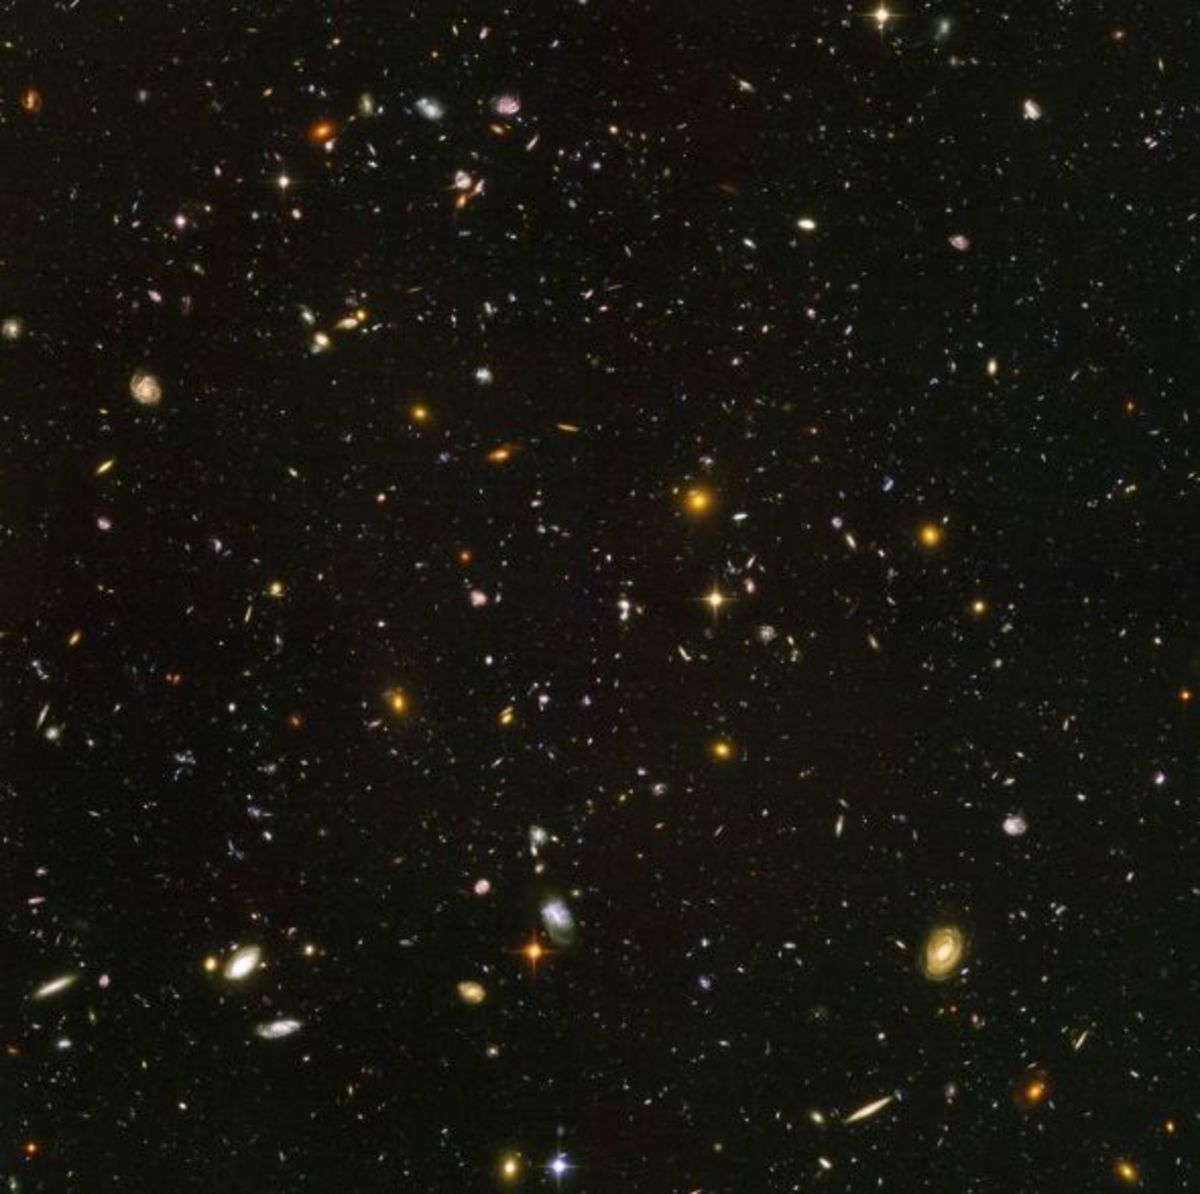 Around 10,000 galaxies 13 billions of light years away can be seen in this picture.